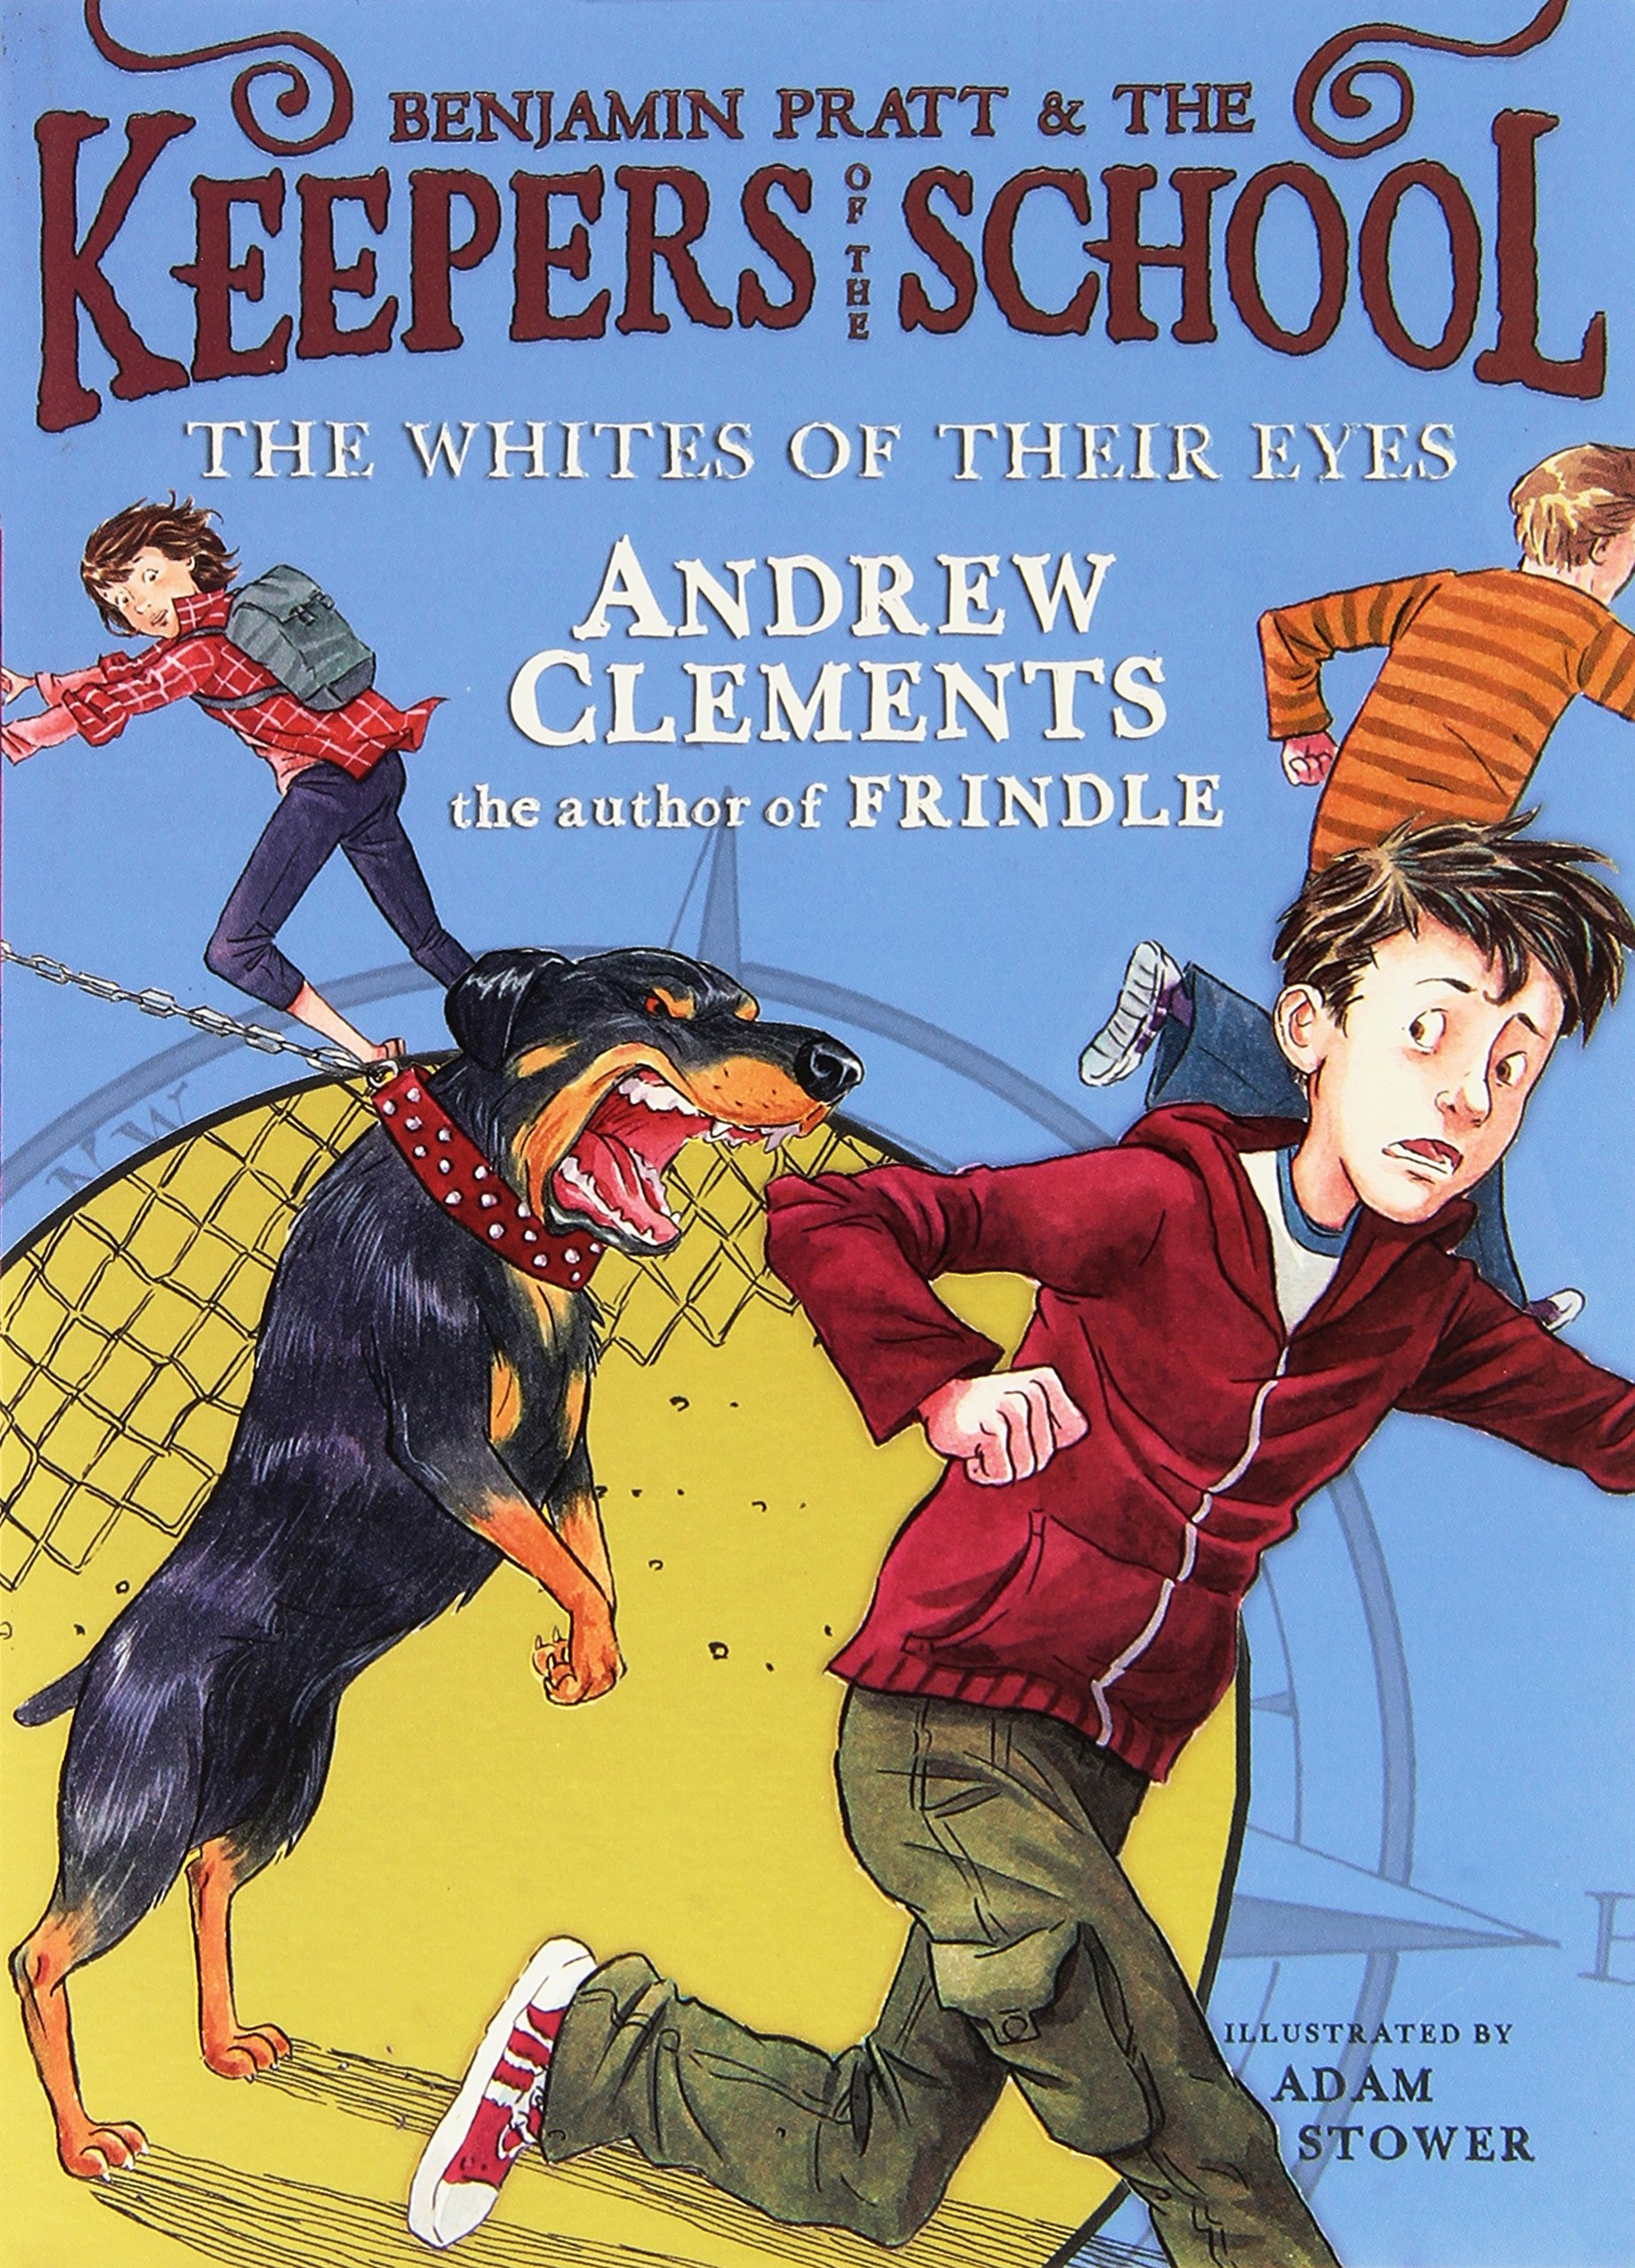 andrew-clements-keepers-school-whites-eyes.jpg